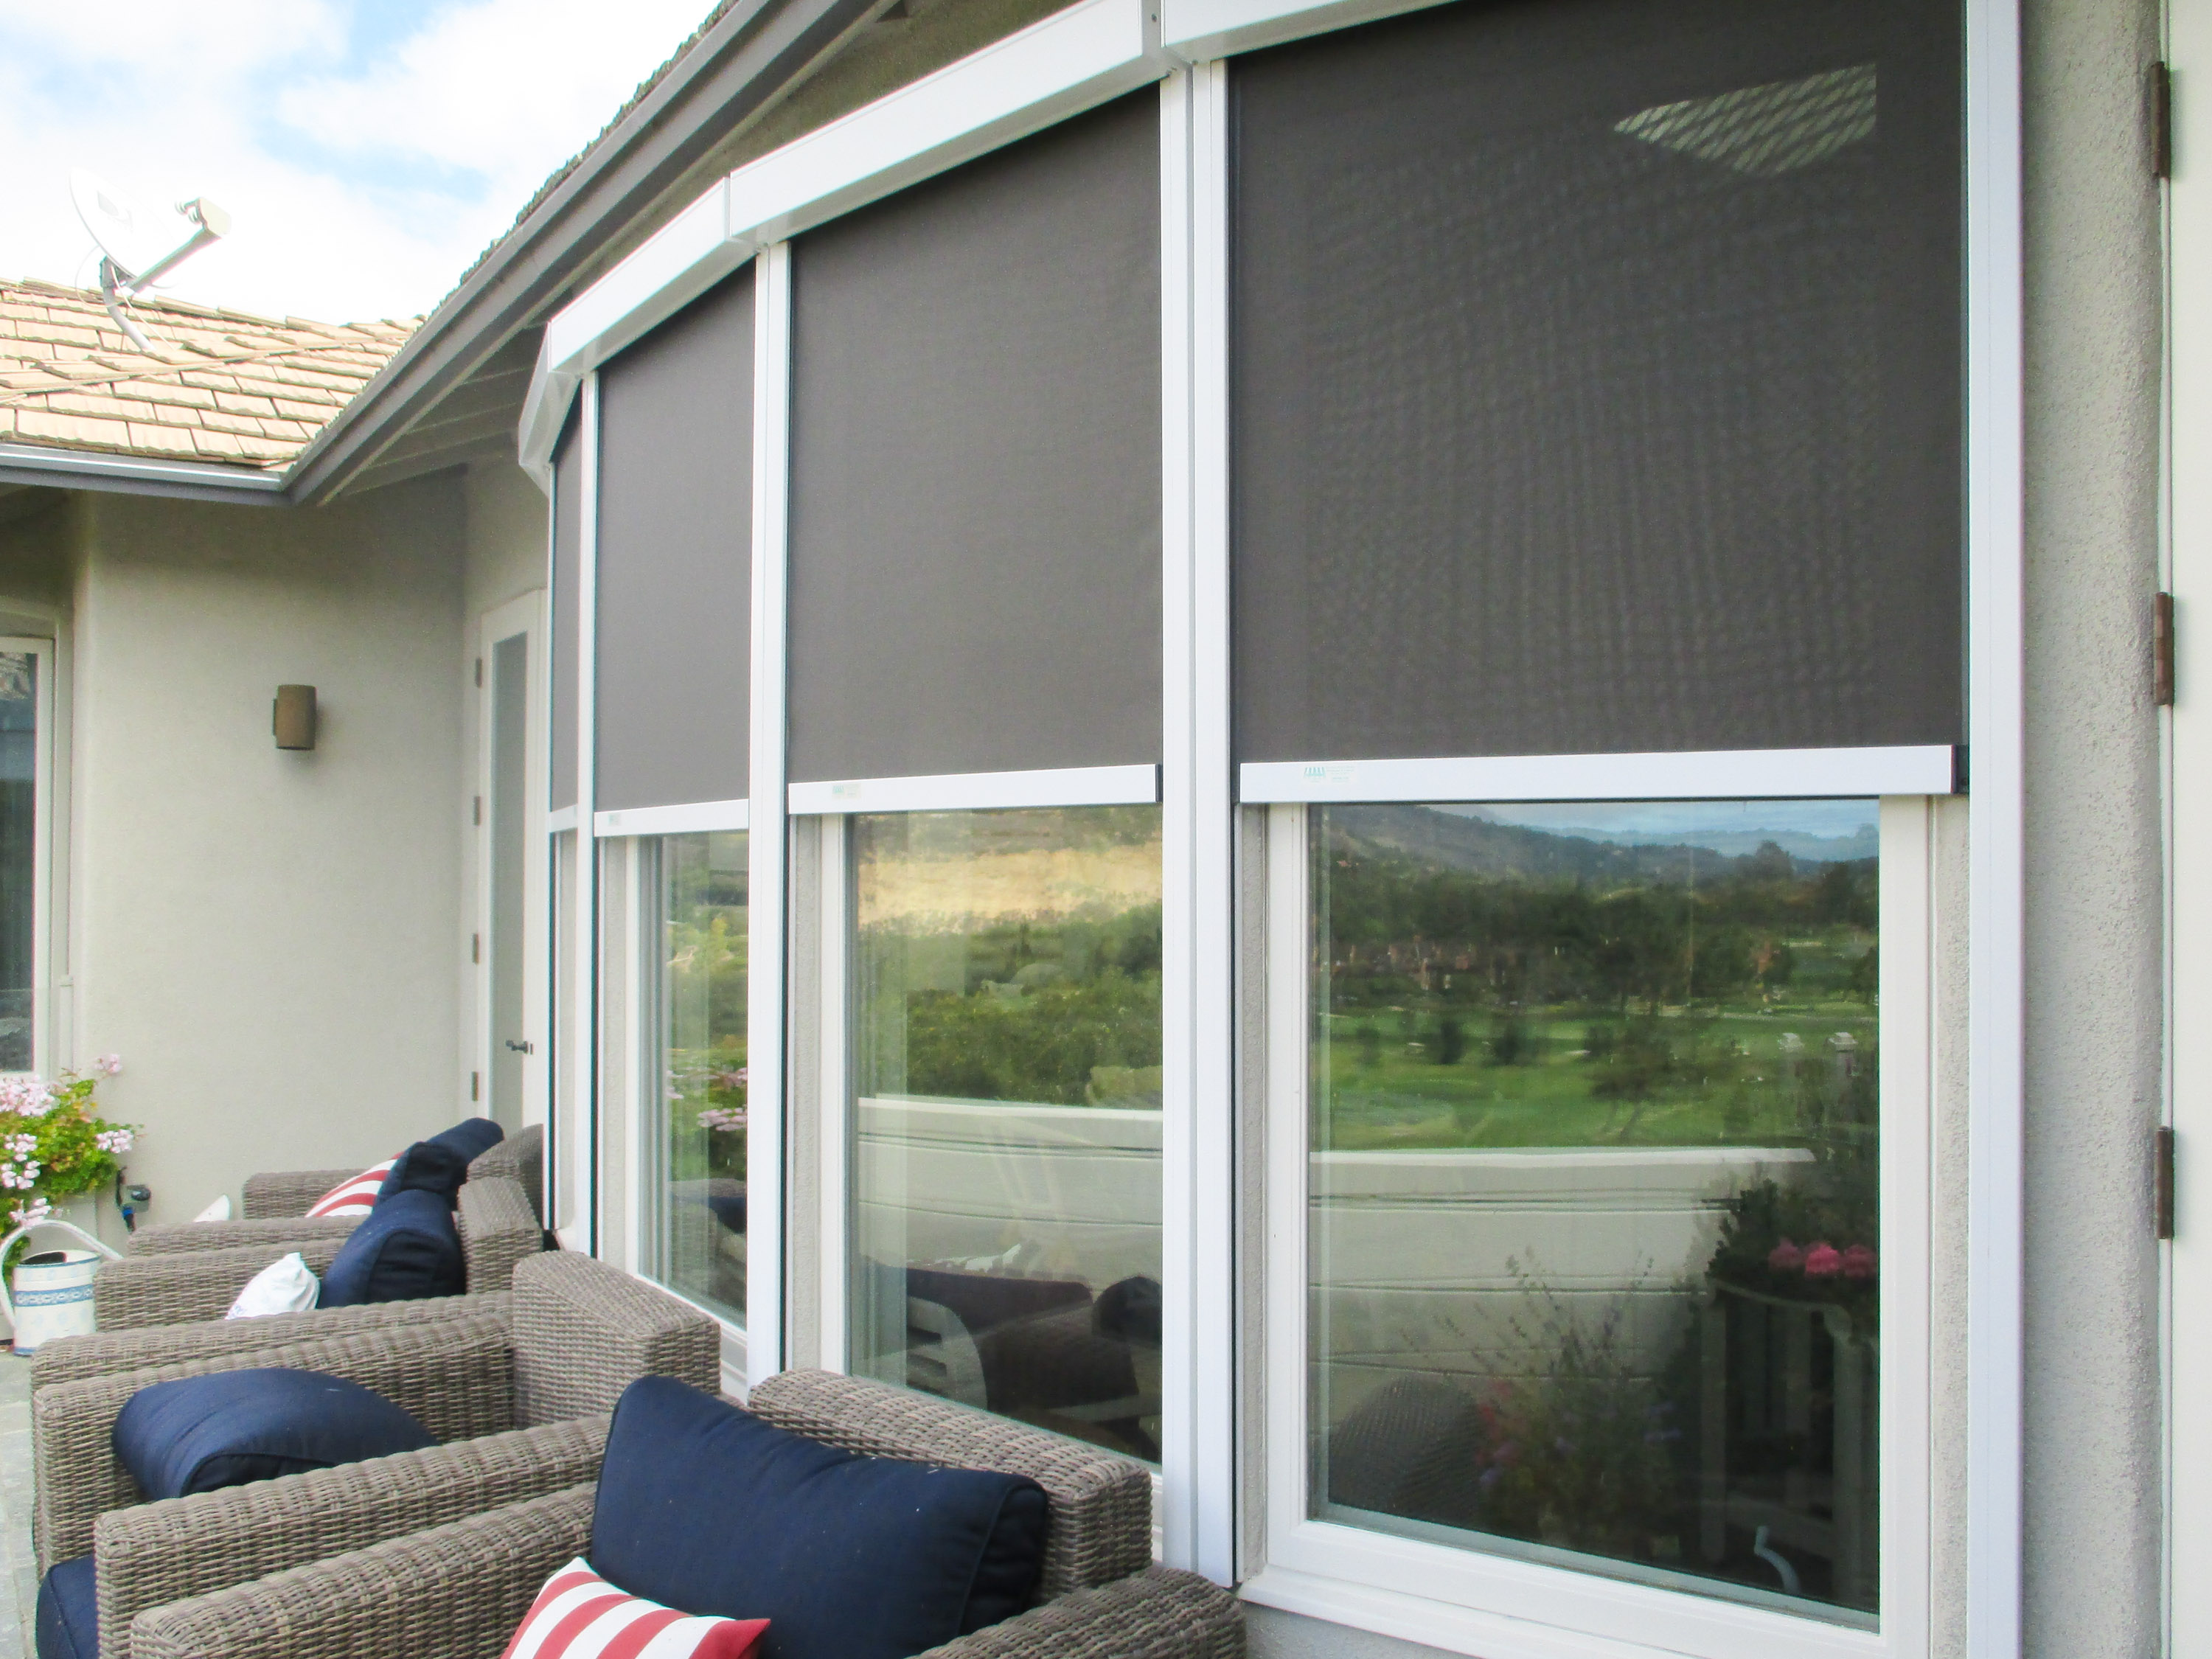 Exterior sun shades for windows - Motorized Solar Screens Rolled Away Motorized Solar Screens Partial